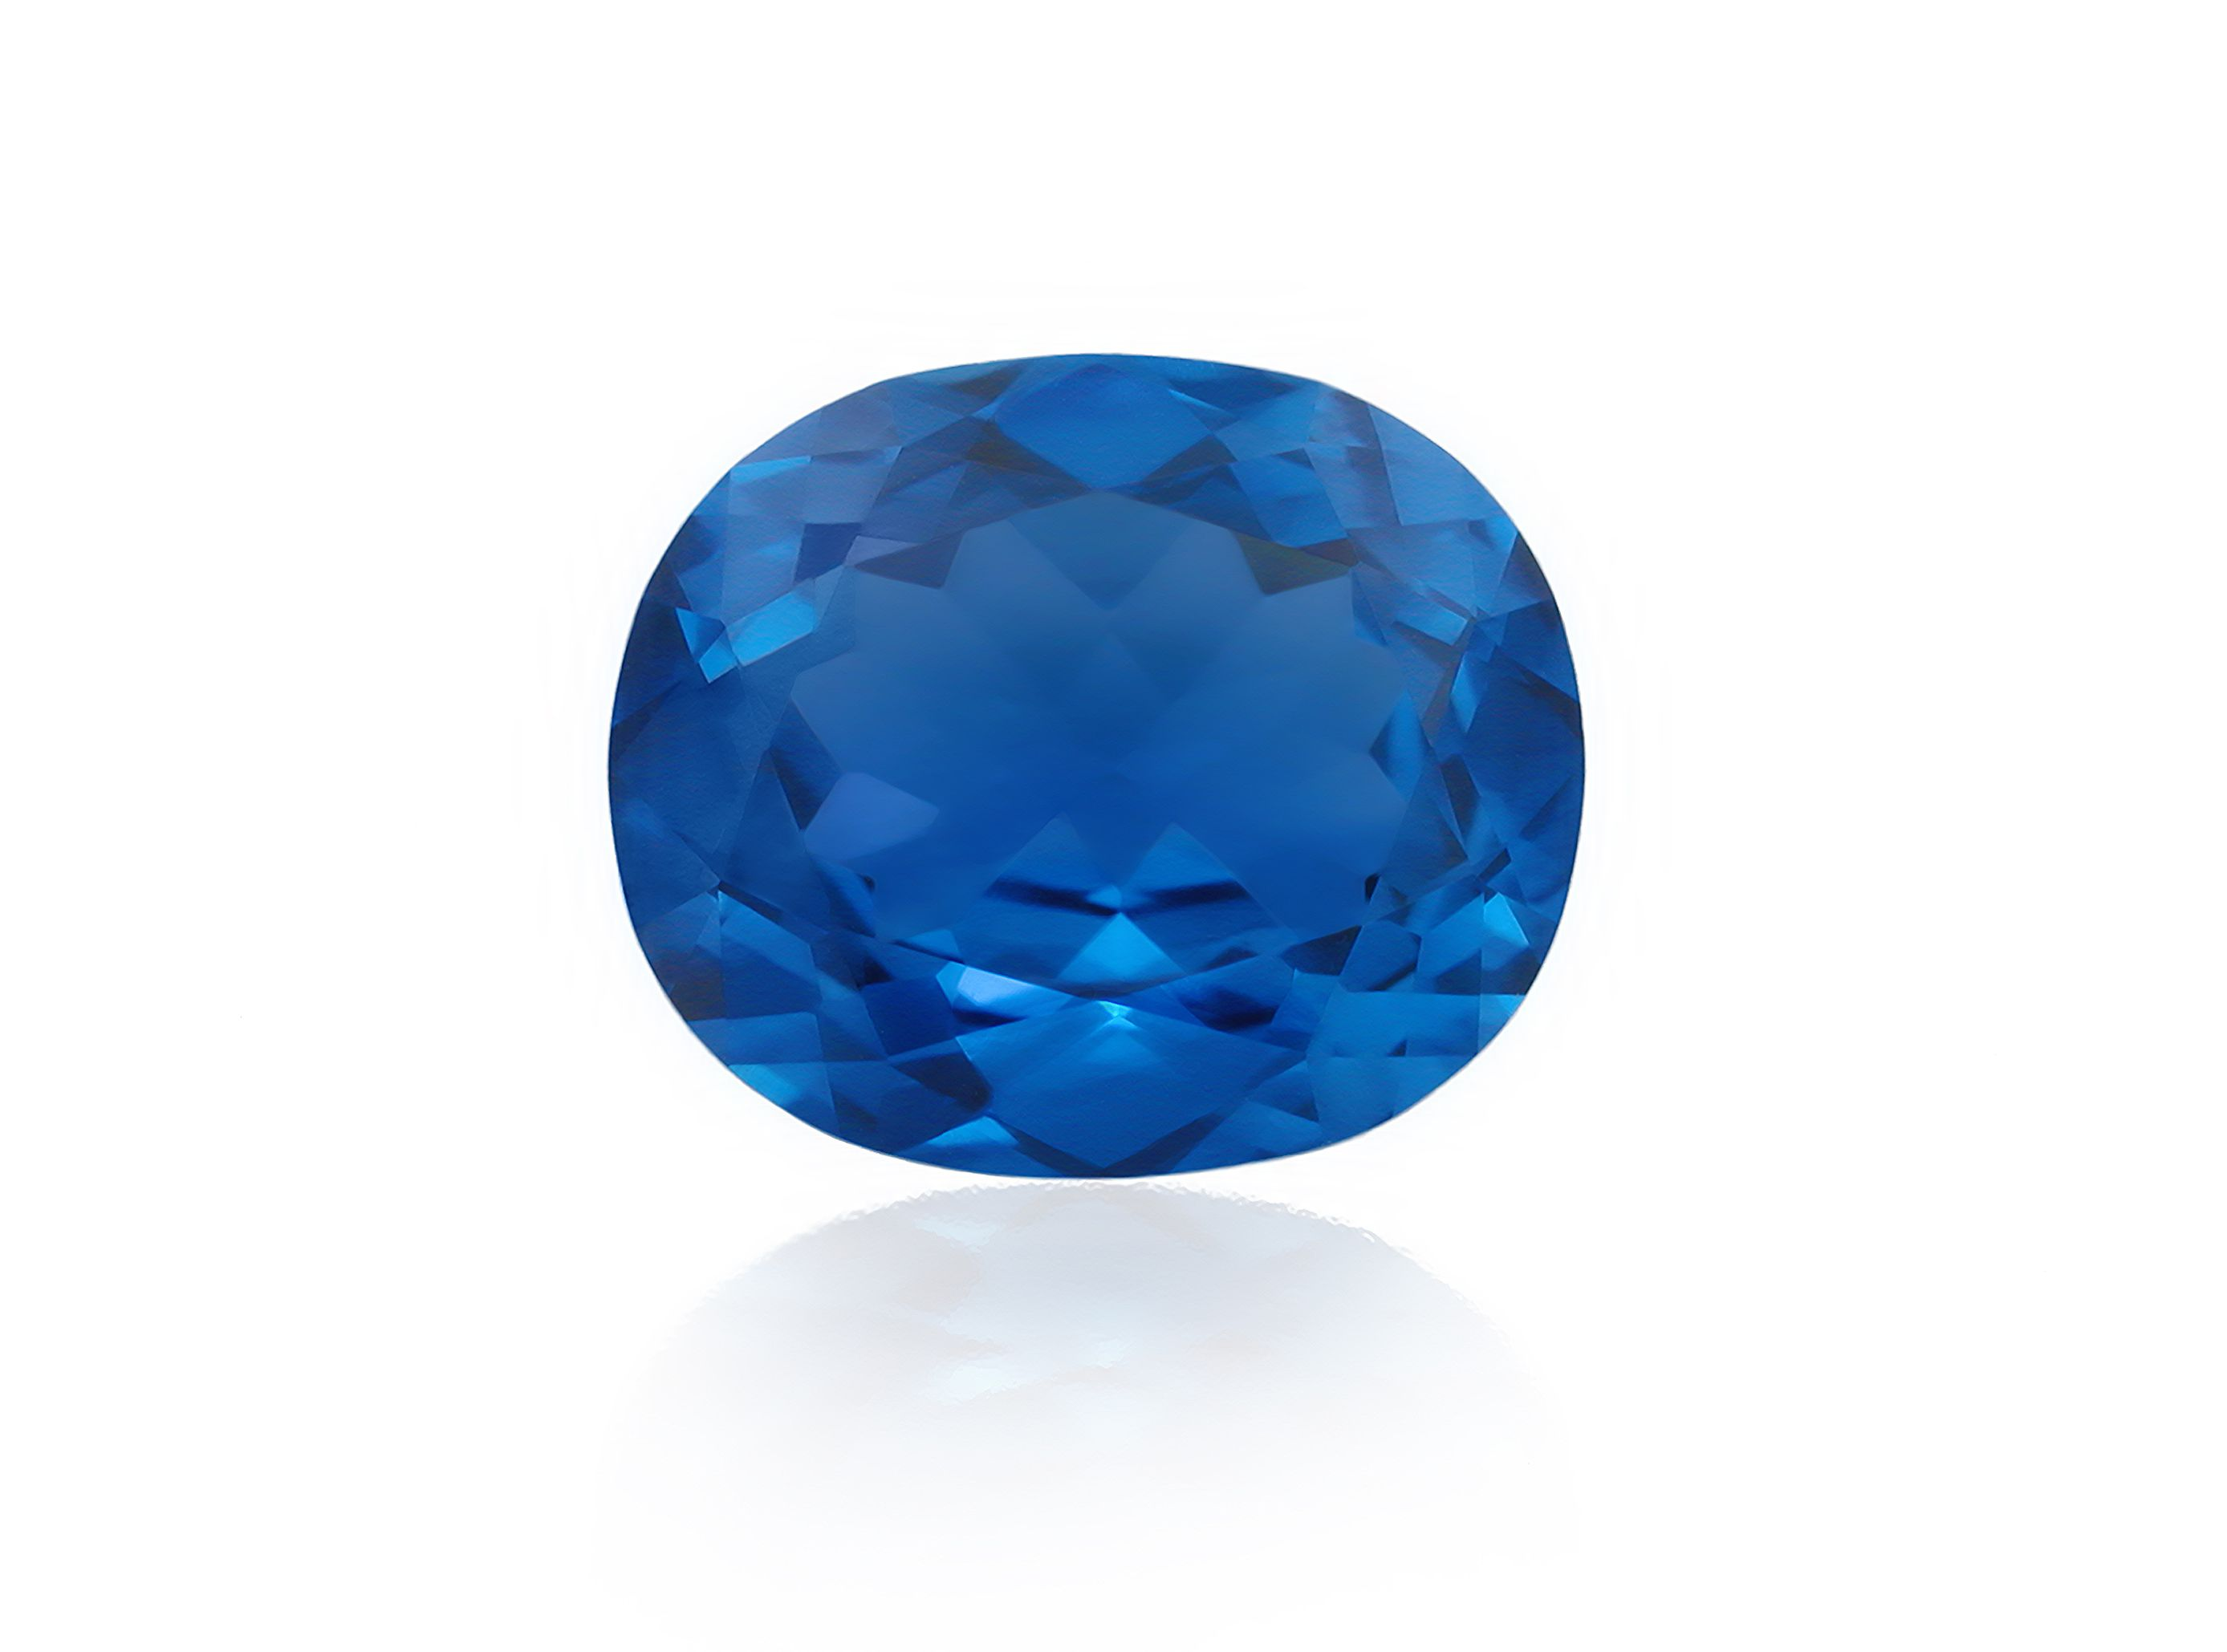 Blue sapphire on a white background